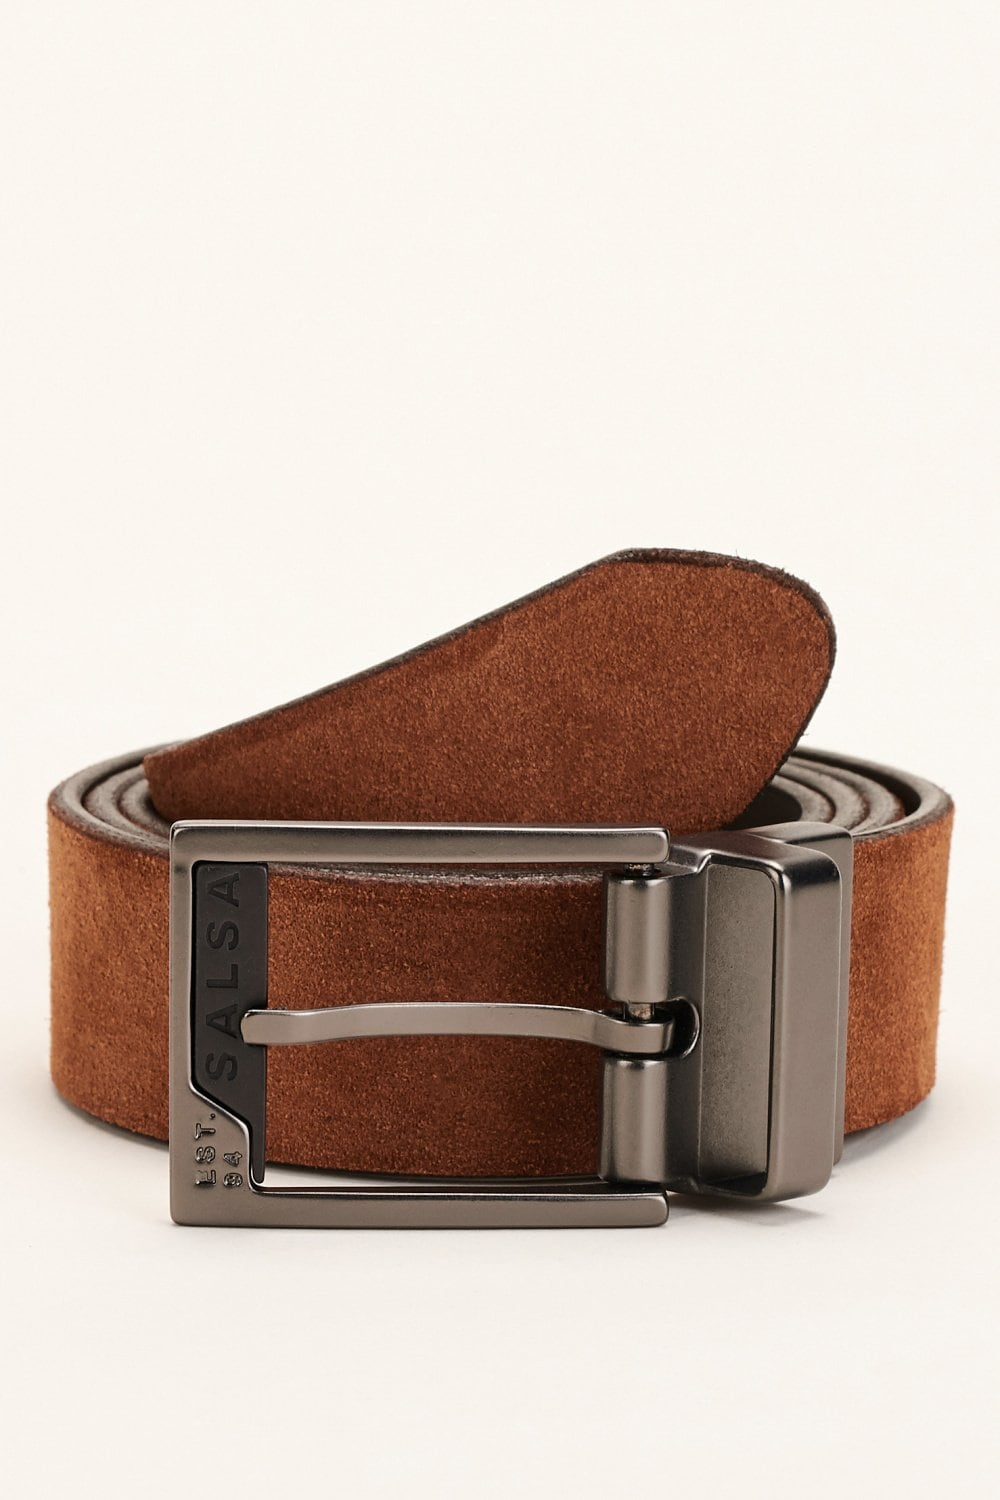 Reversible belt in leather and suede - Salsa